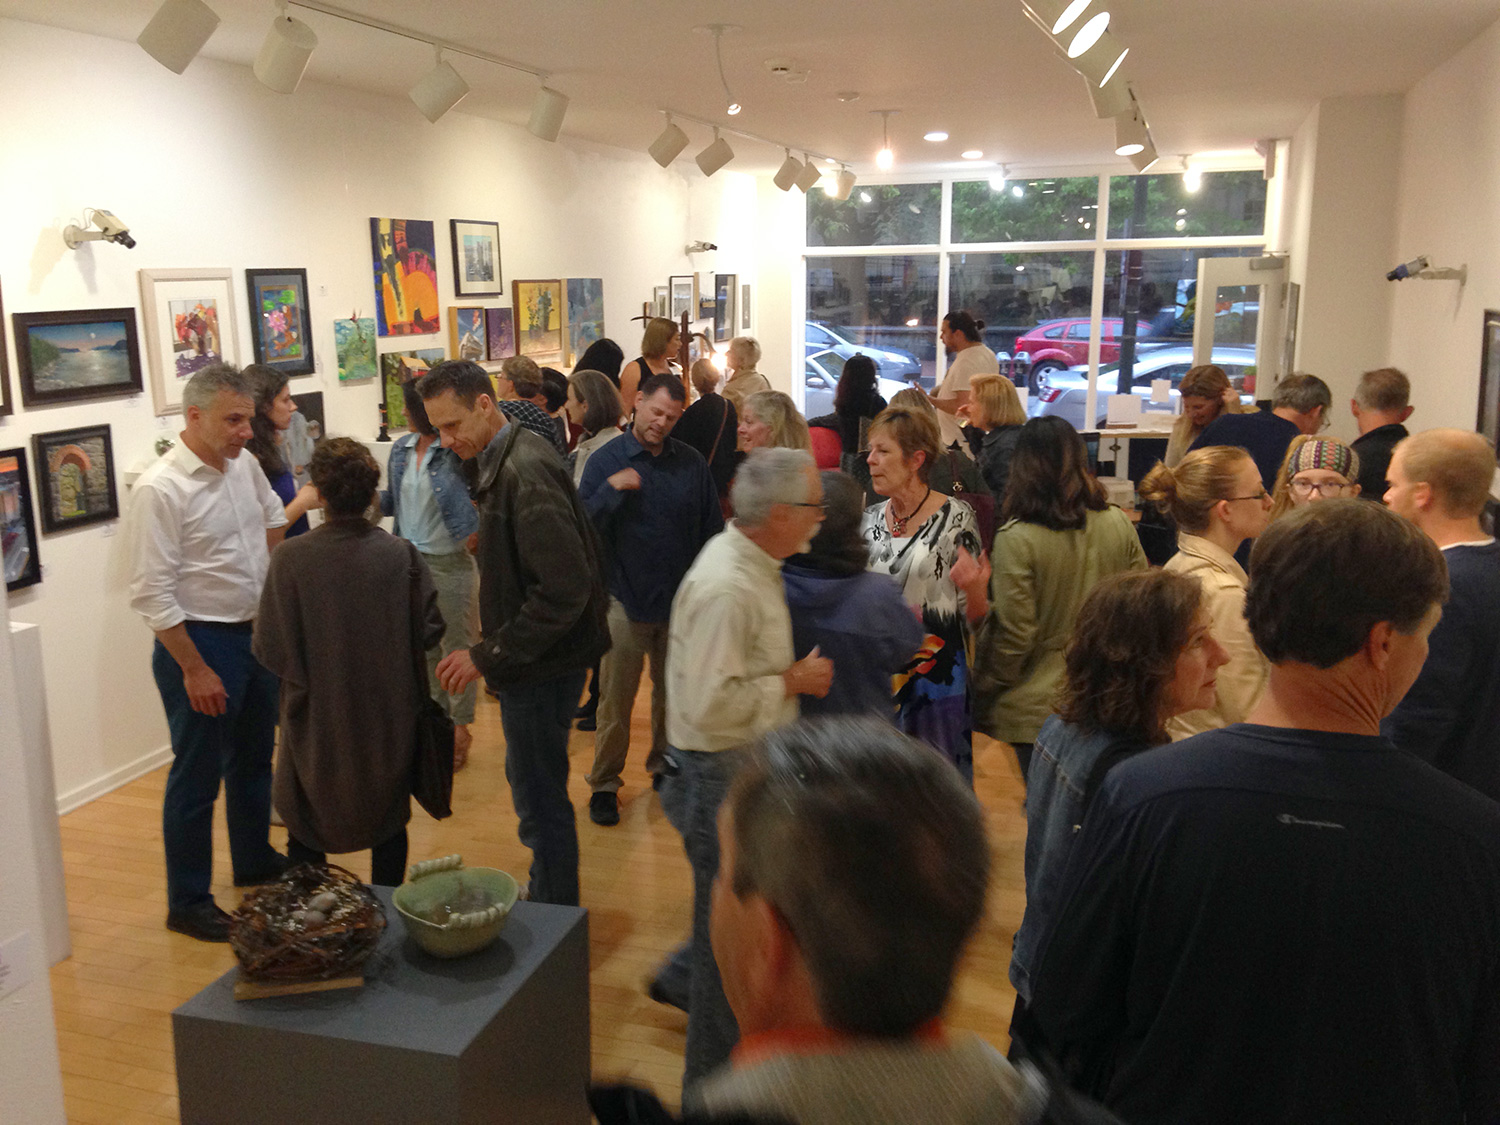 GWCC Hosts Incredible Evening of Art in West Chester During Annual Gallery Walk